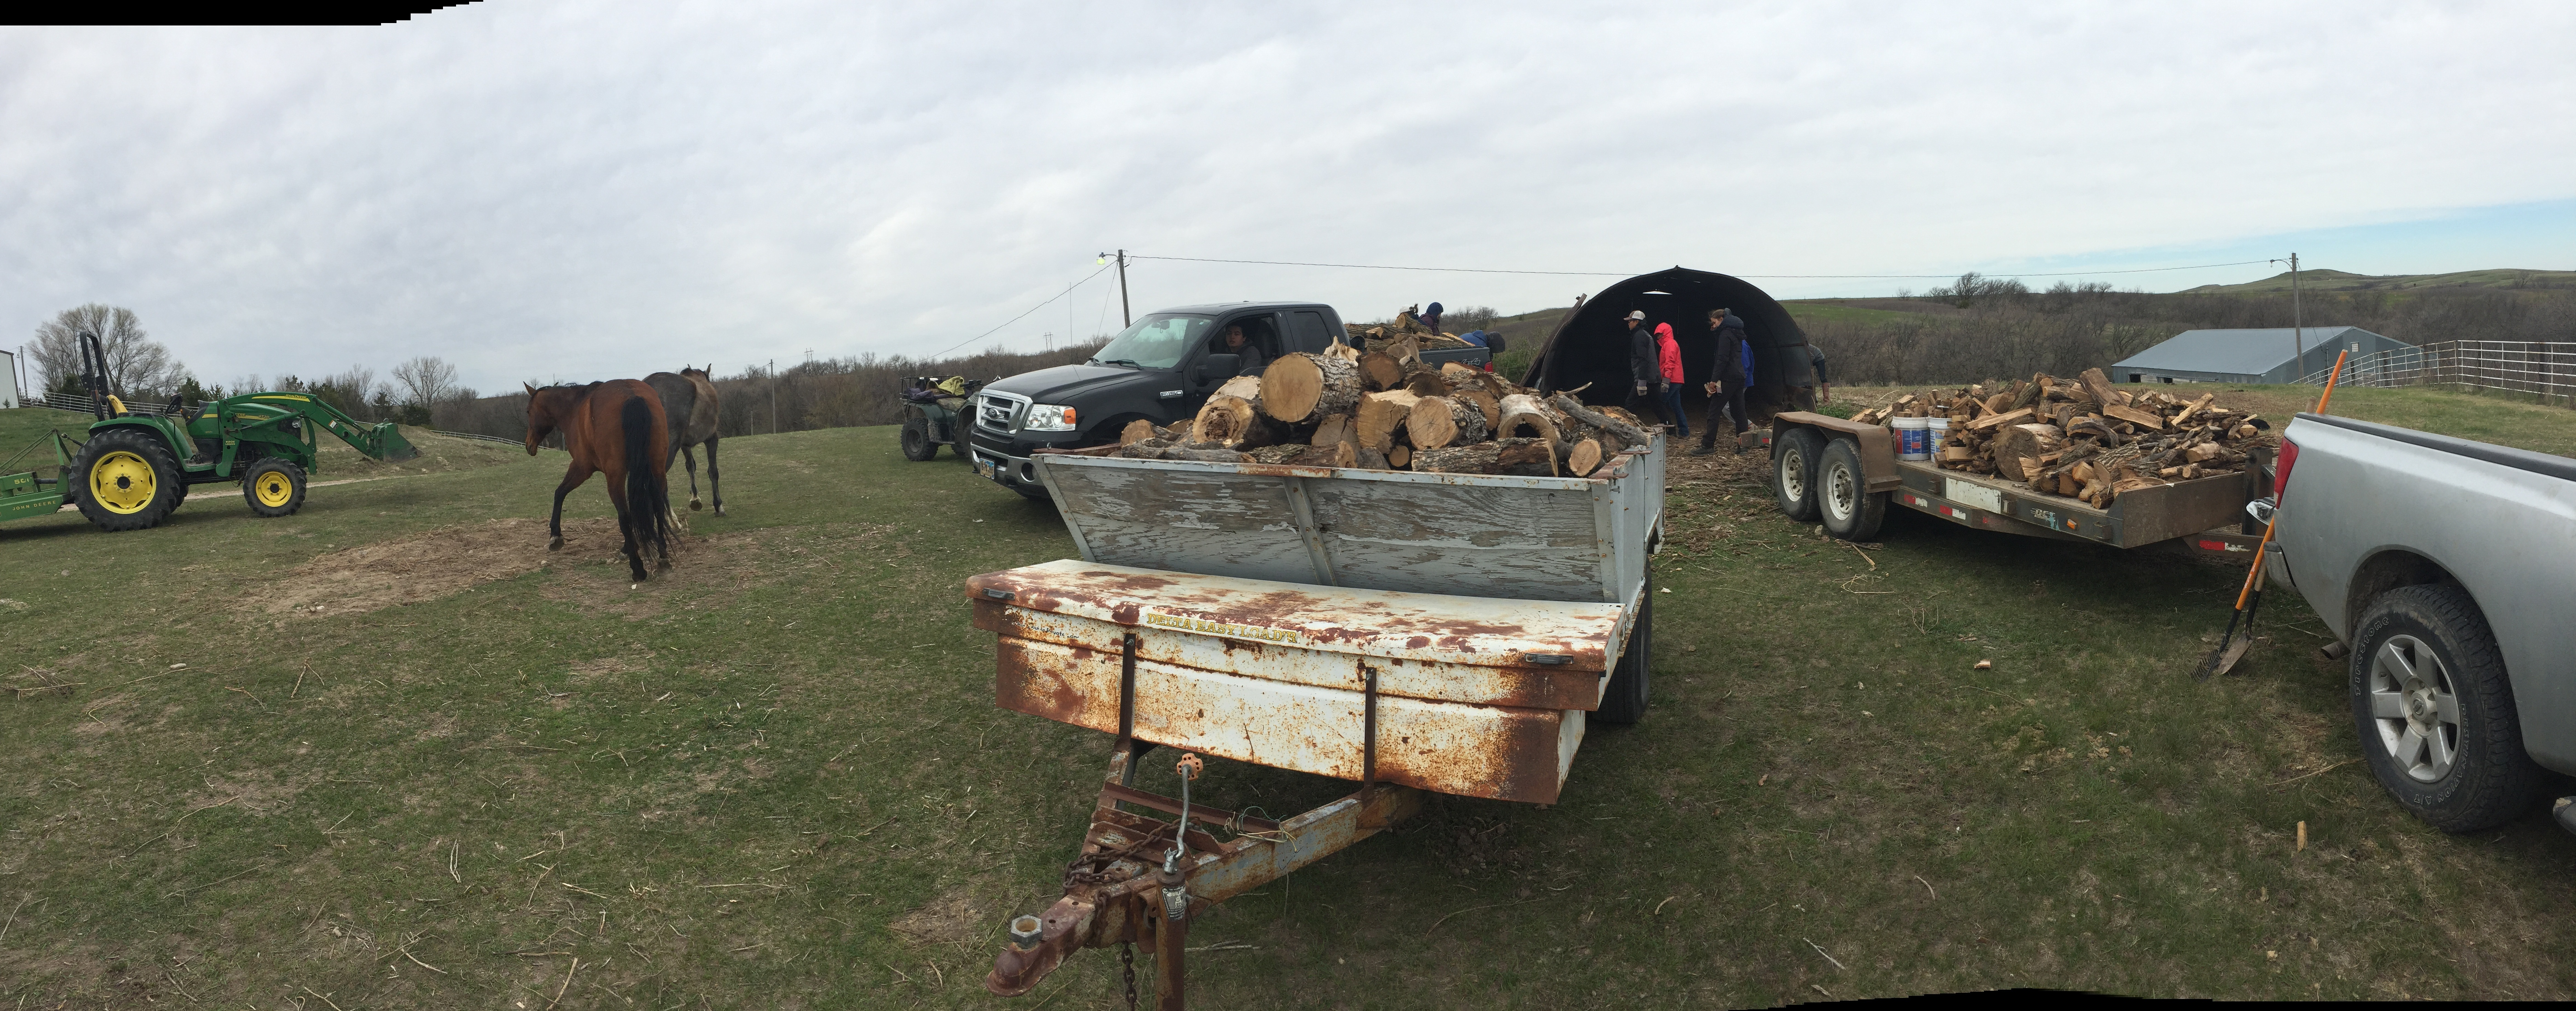 5_SD_Gearing up to Move the Woodshed.jpg